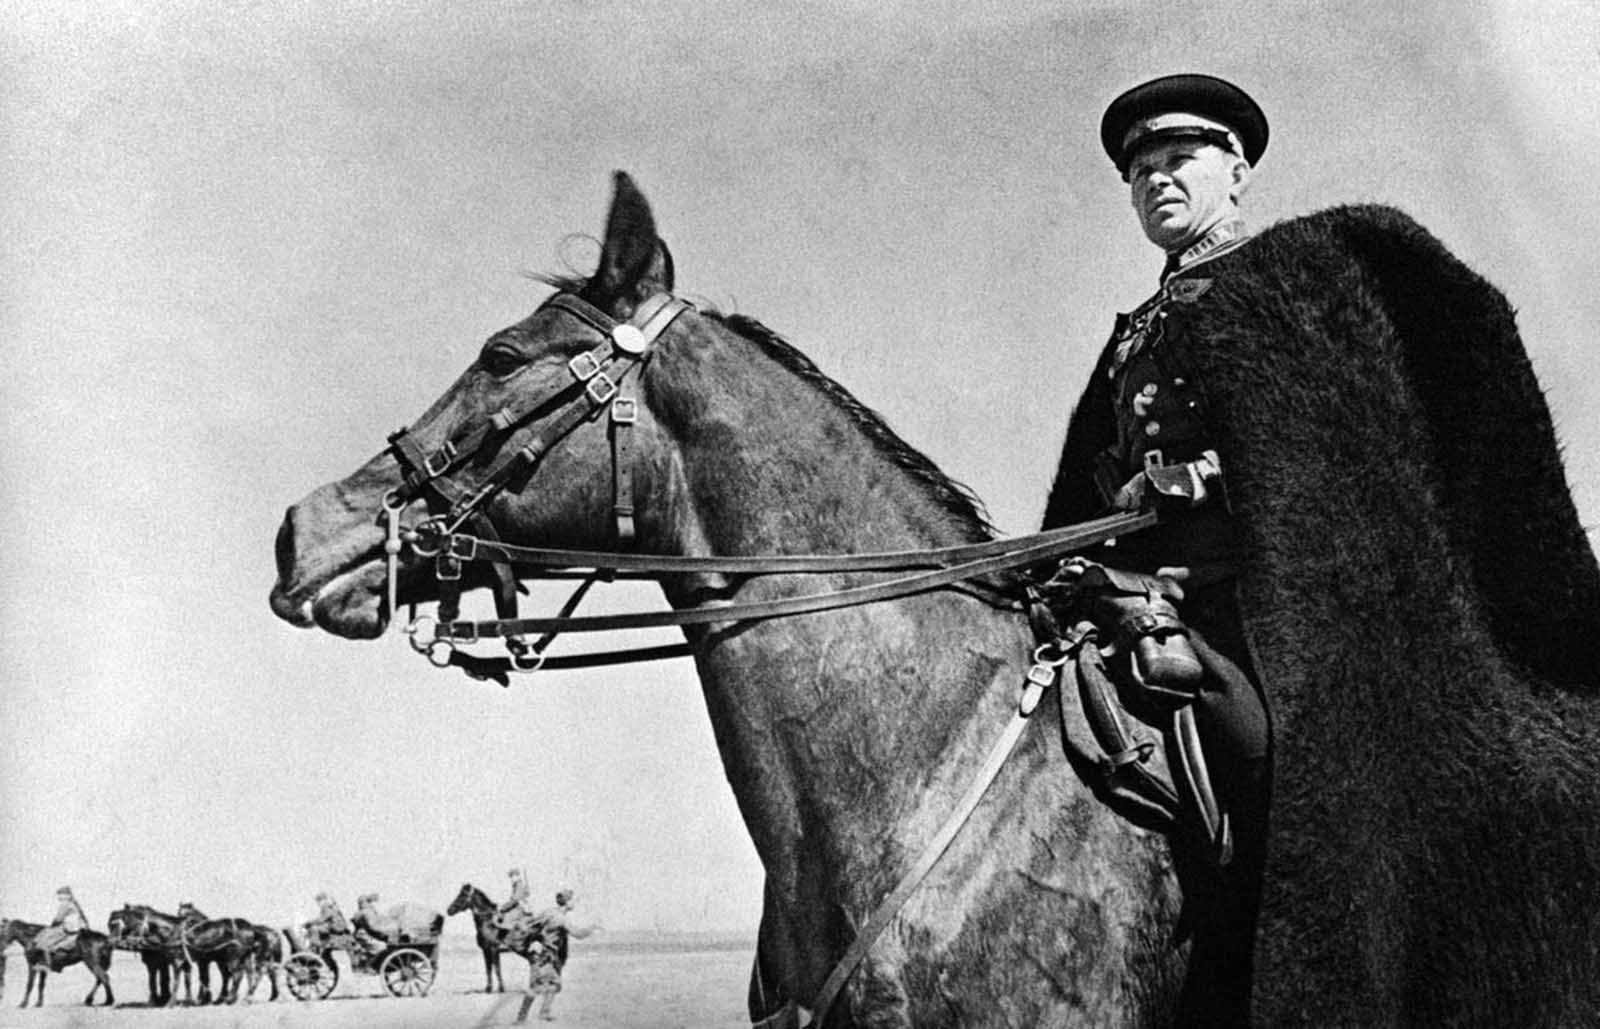 The commander of a Cossack unit on active service in the Kharkov region, Ukraine, on June 21, 1942, watching the progress of his troops.